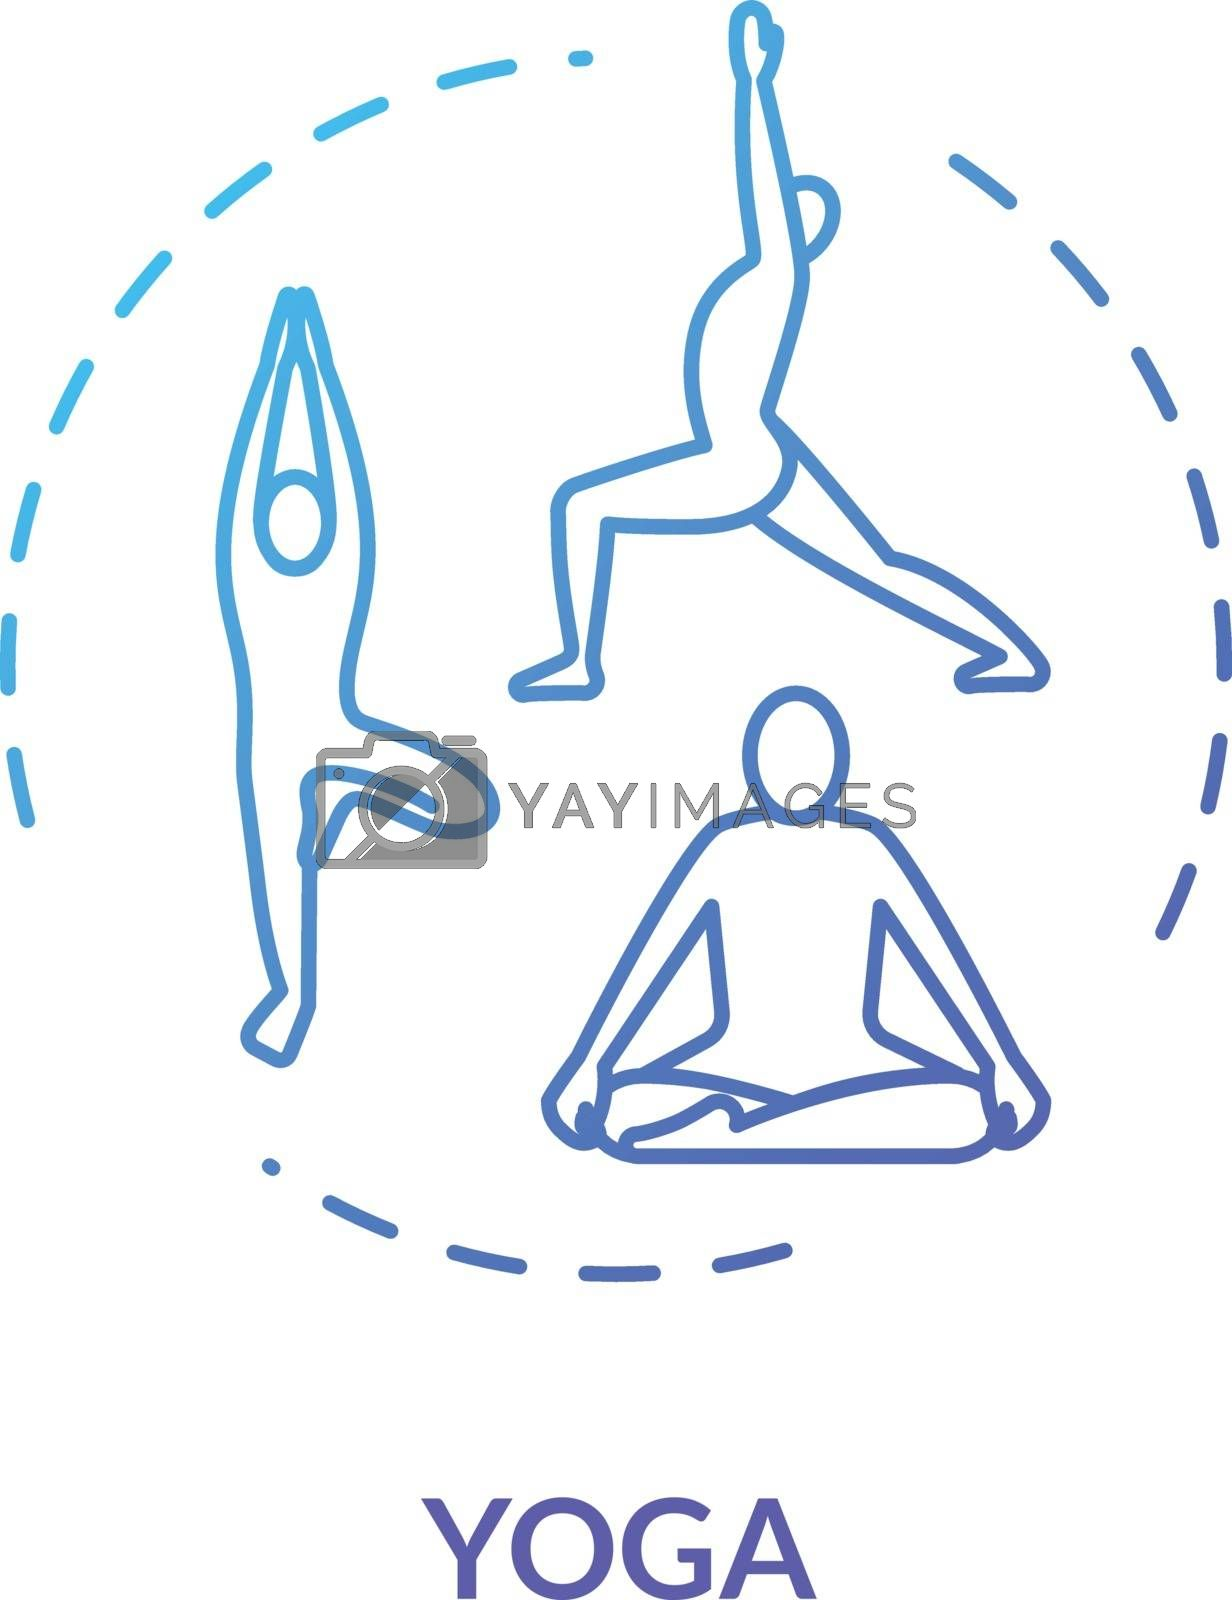 Yoga concept icon. Healthy lifestyle, relaxing workout, complementary medicine idea thin line illustration. Active exercises and meditation therapy. Vector isolated outline RGB color drawing